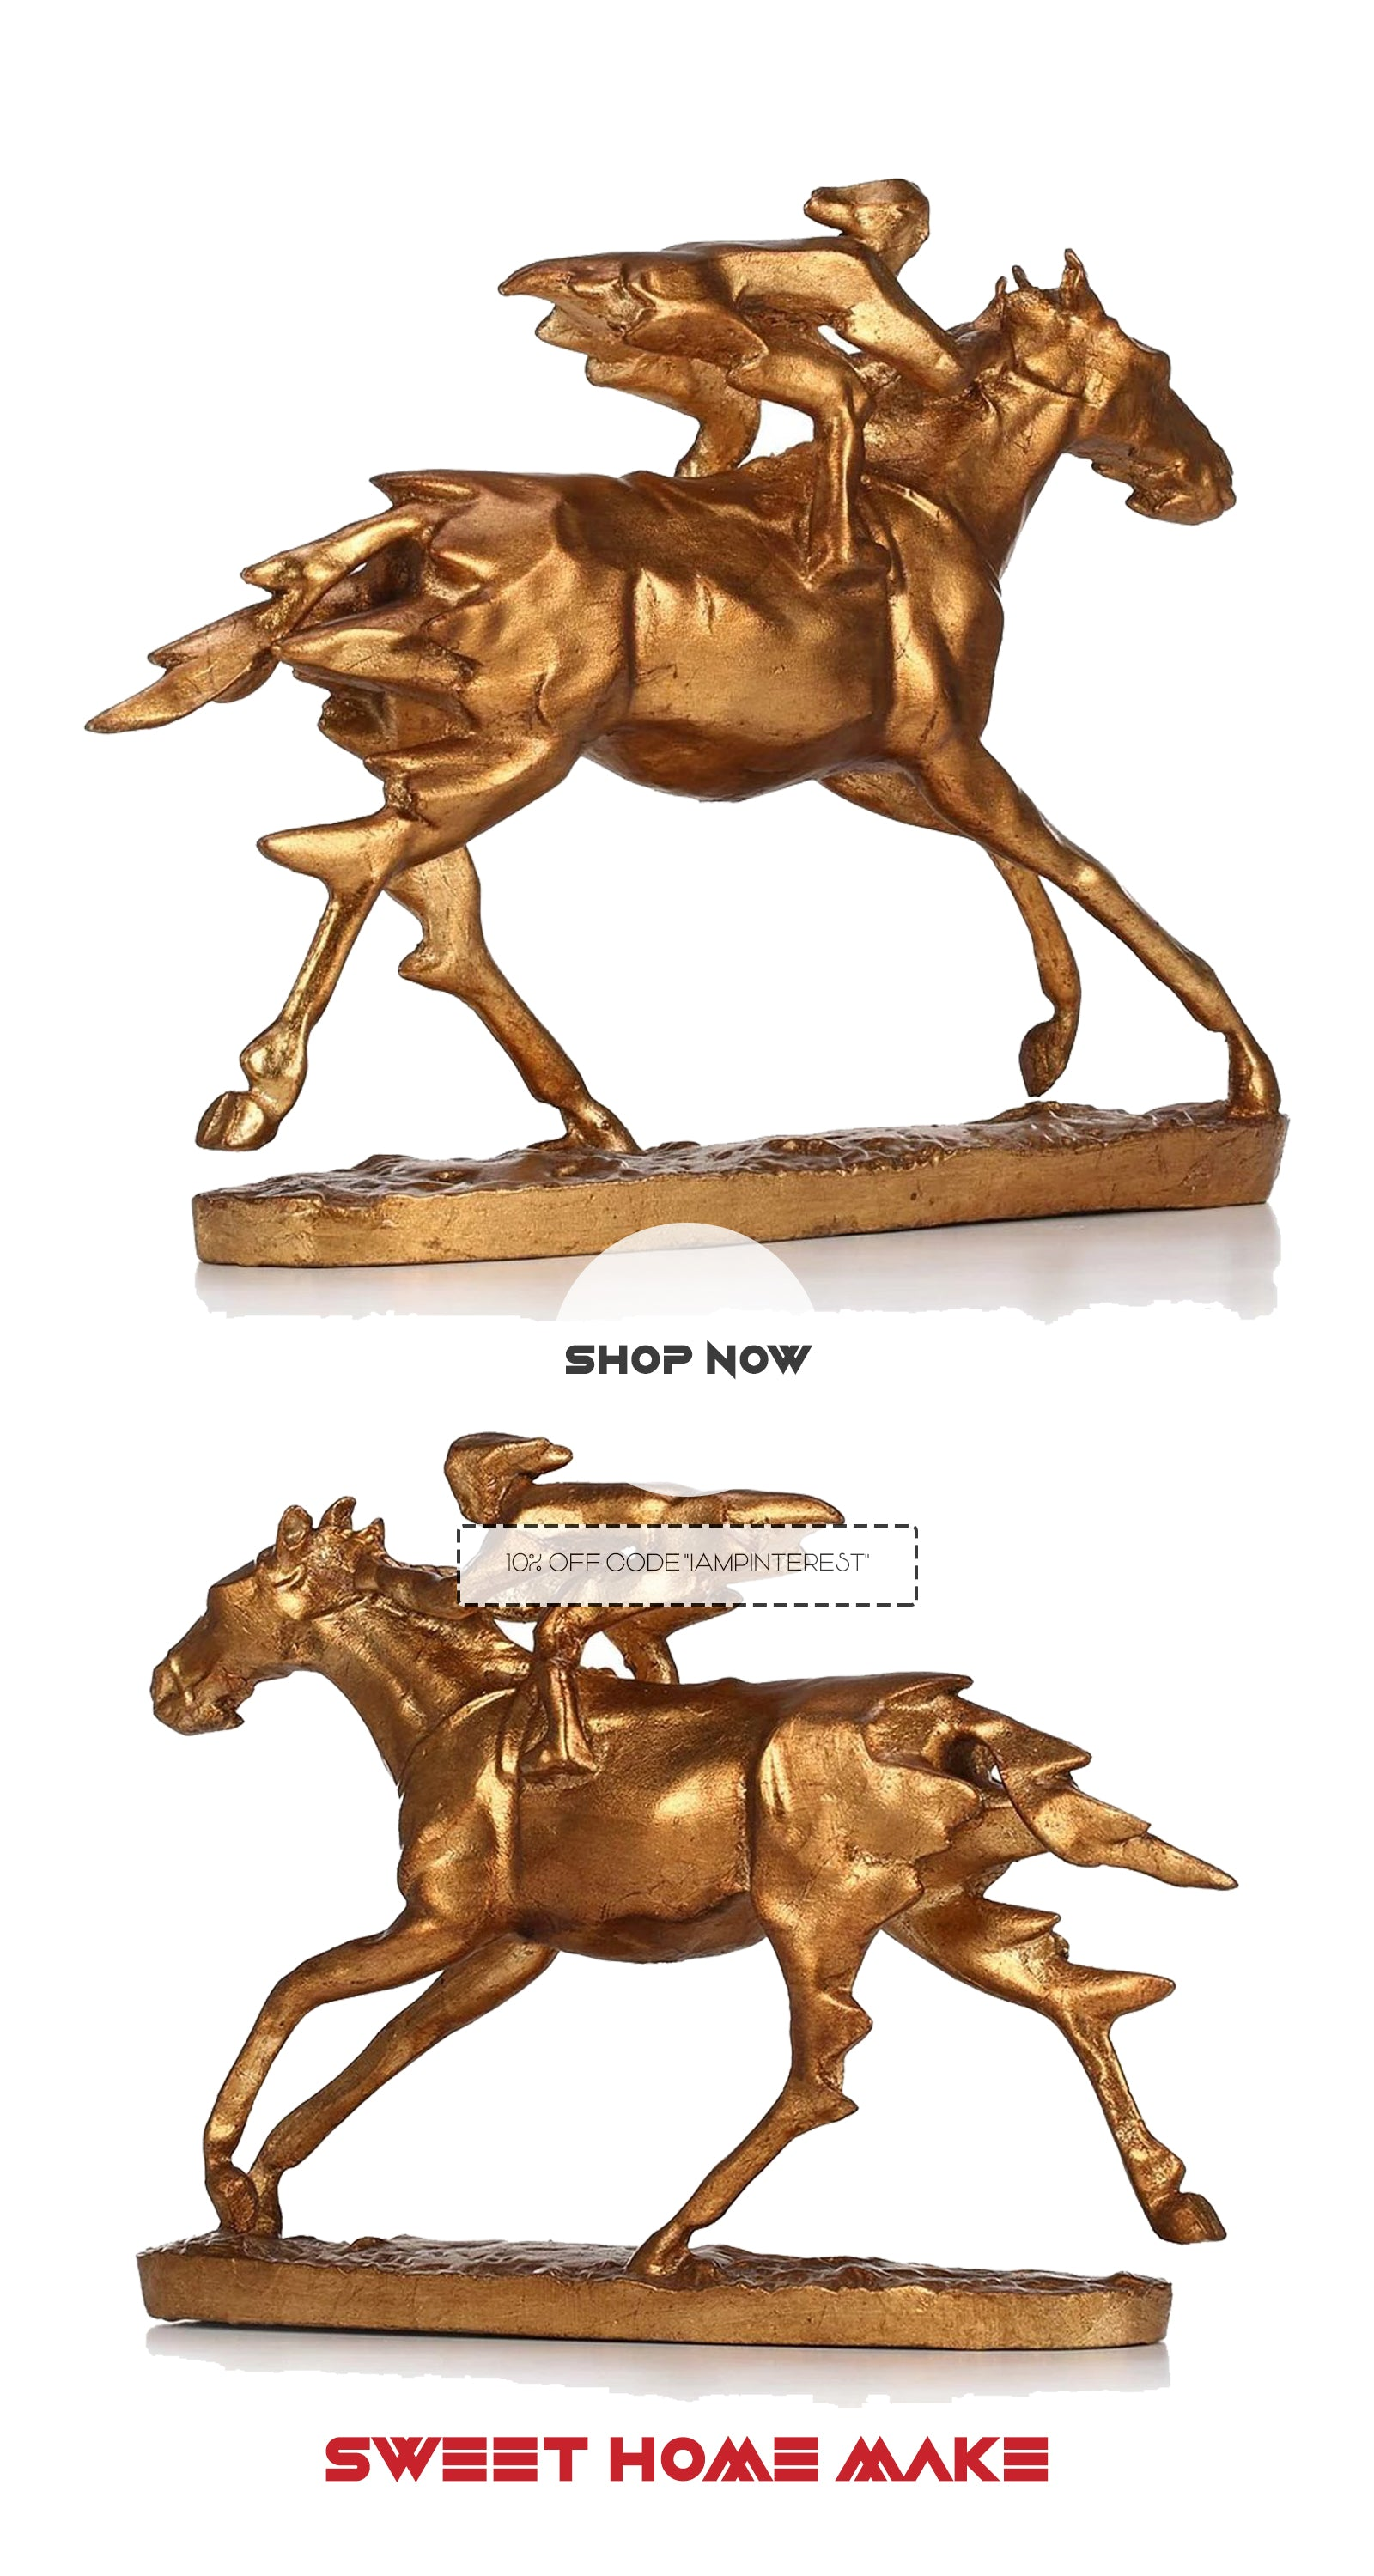 Small Decorative Gold Horse Statue with Gold Horse Riding For Horse Decor